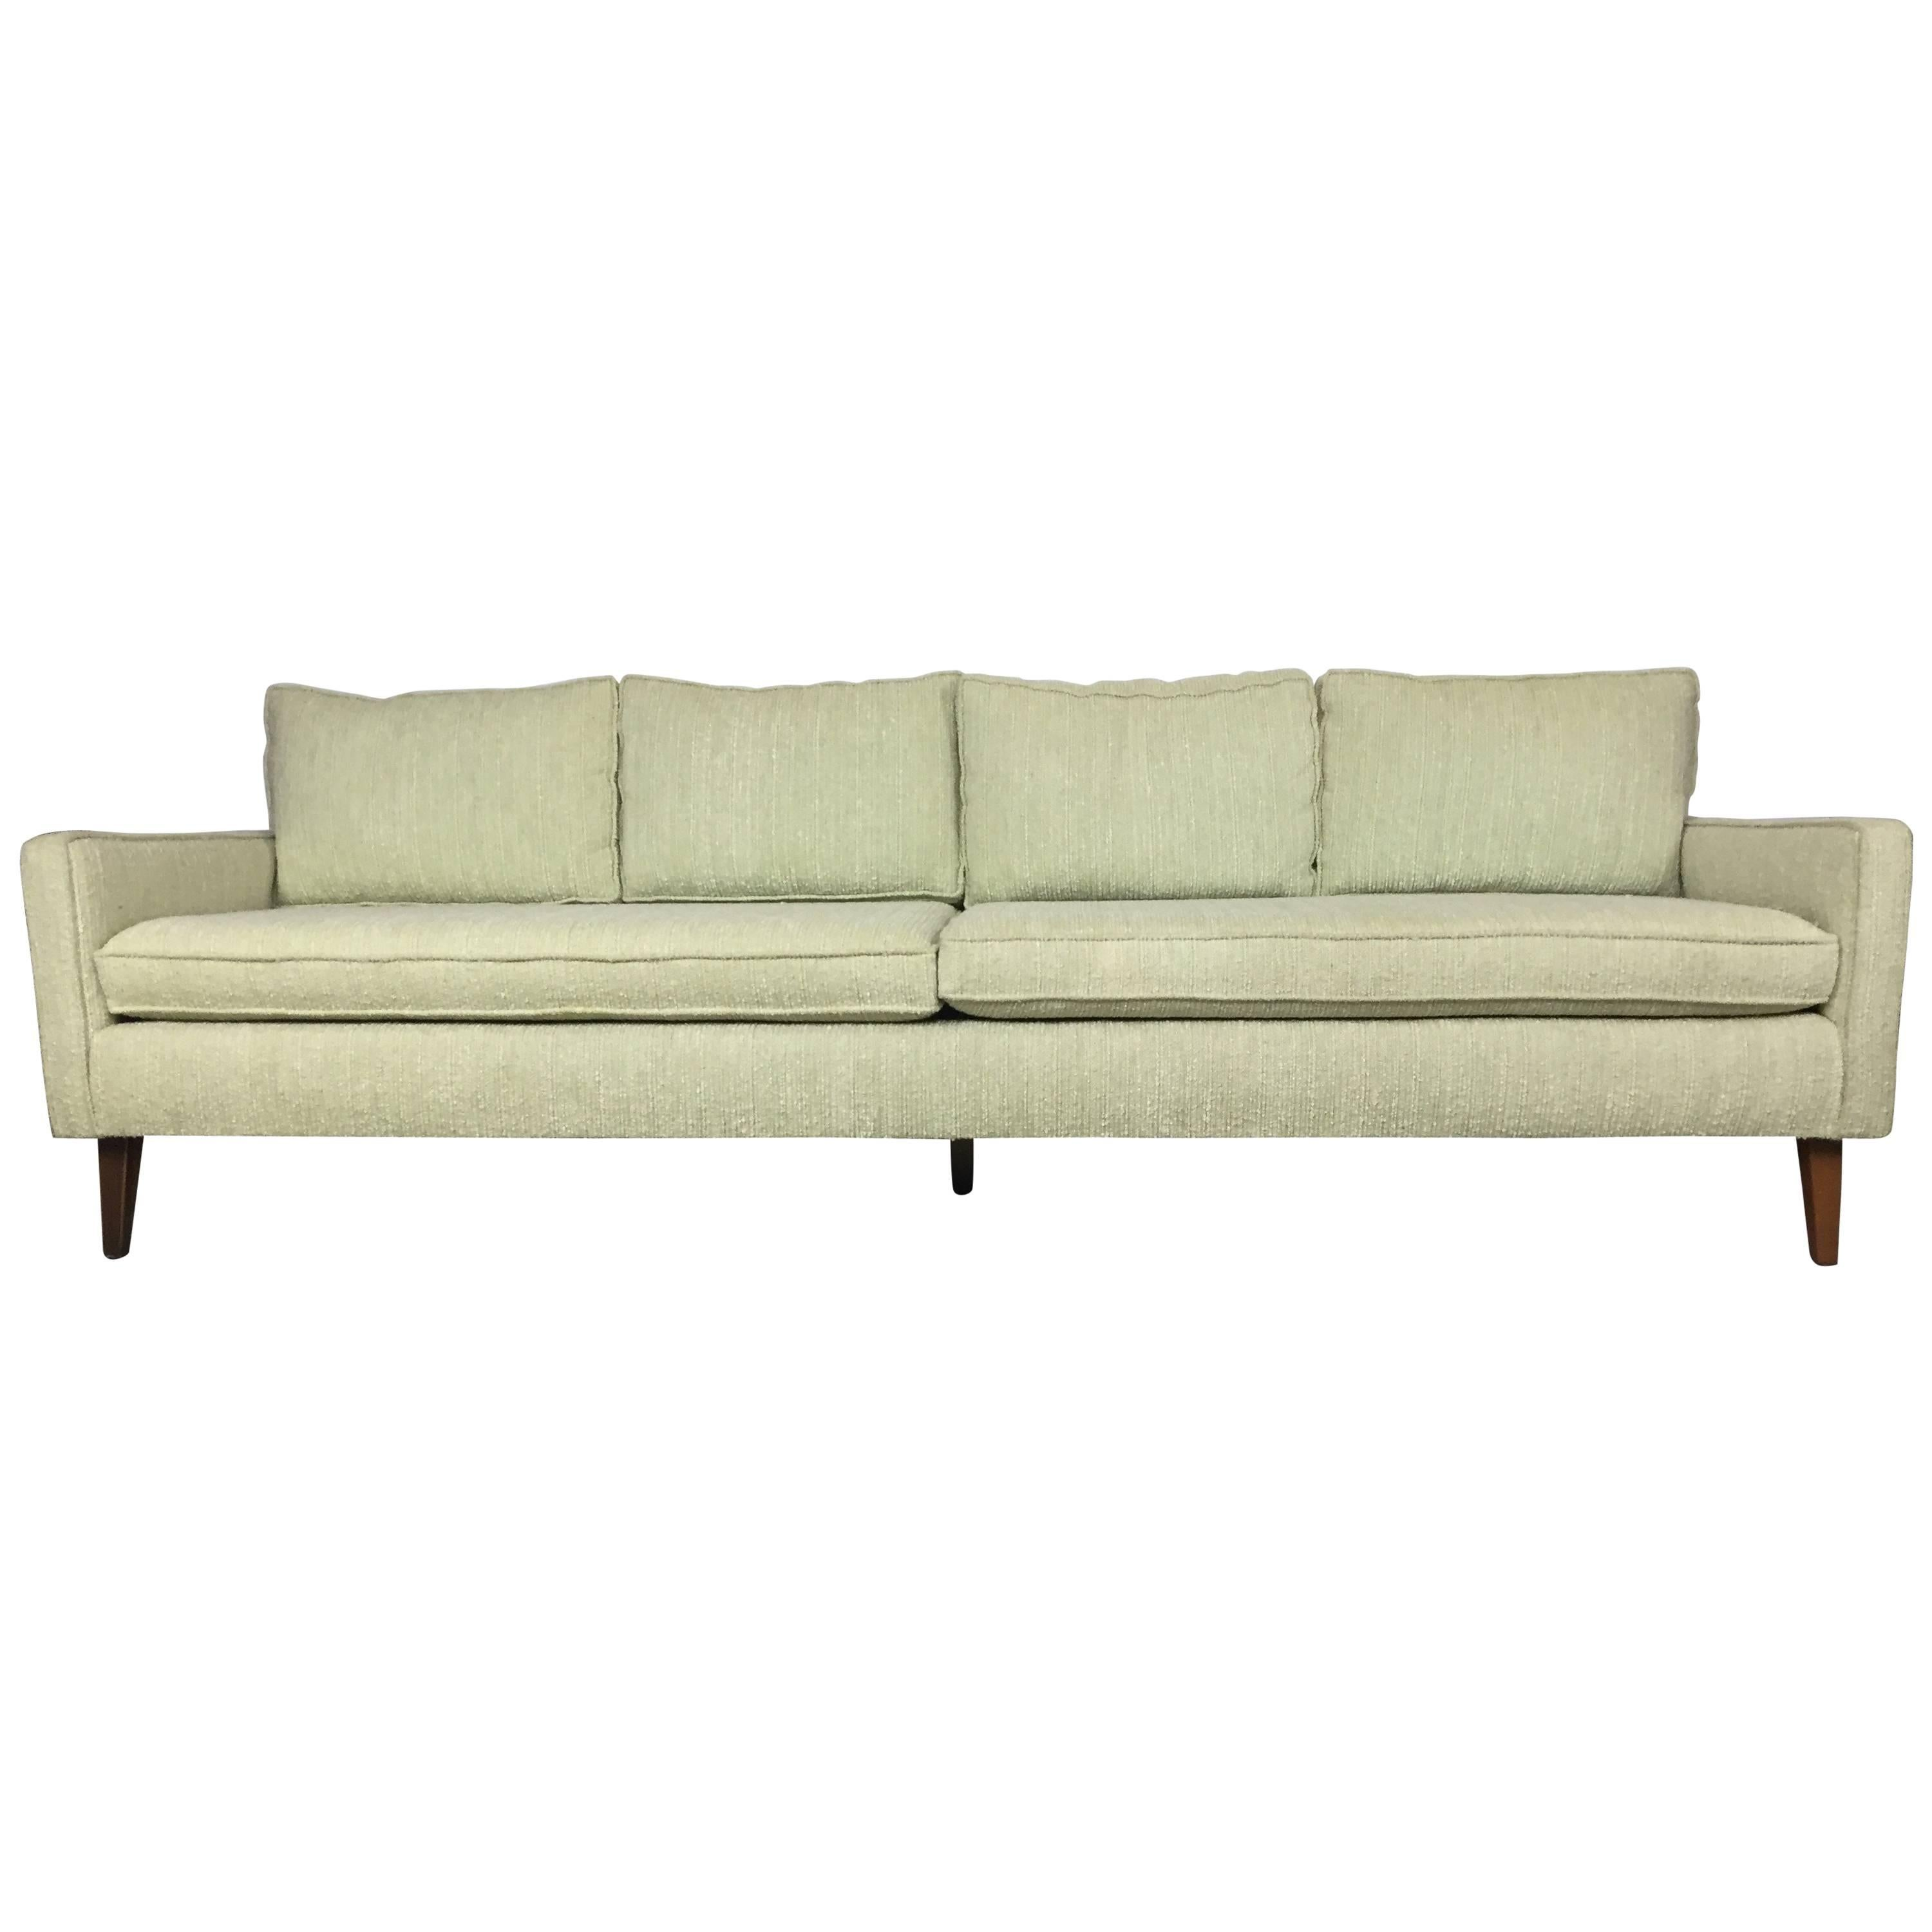 Sofa X Long Mid Century Celery Wool Boucle And Walnut Sofa And Chair Set